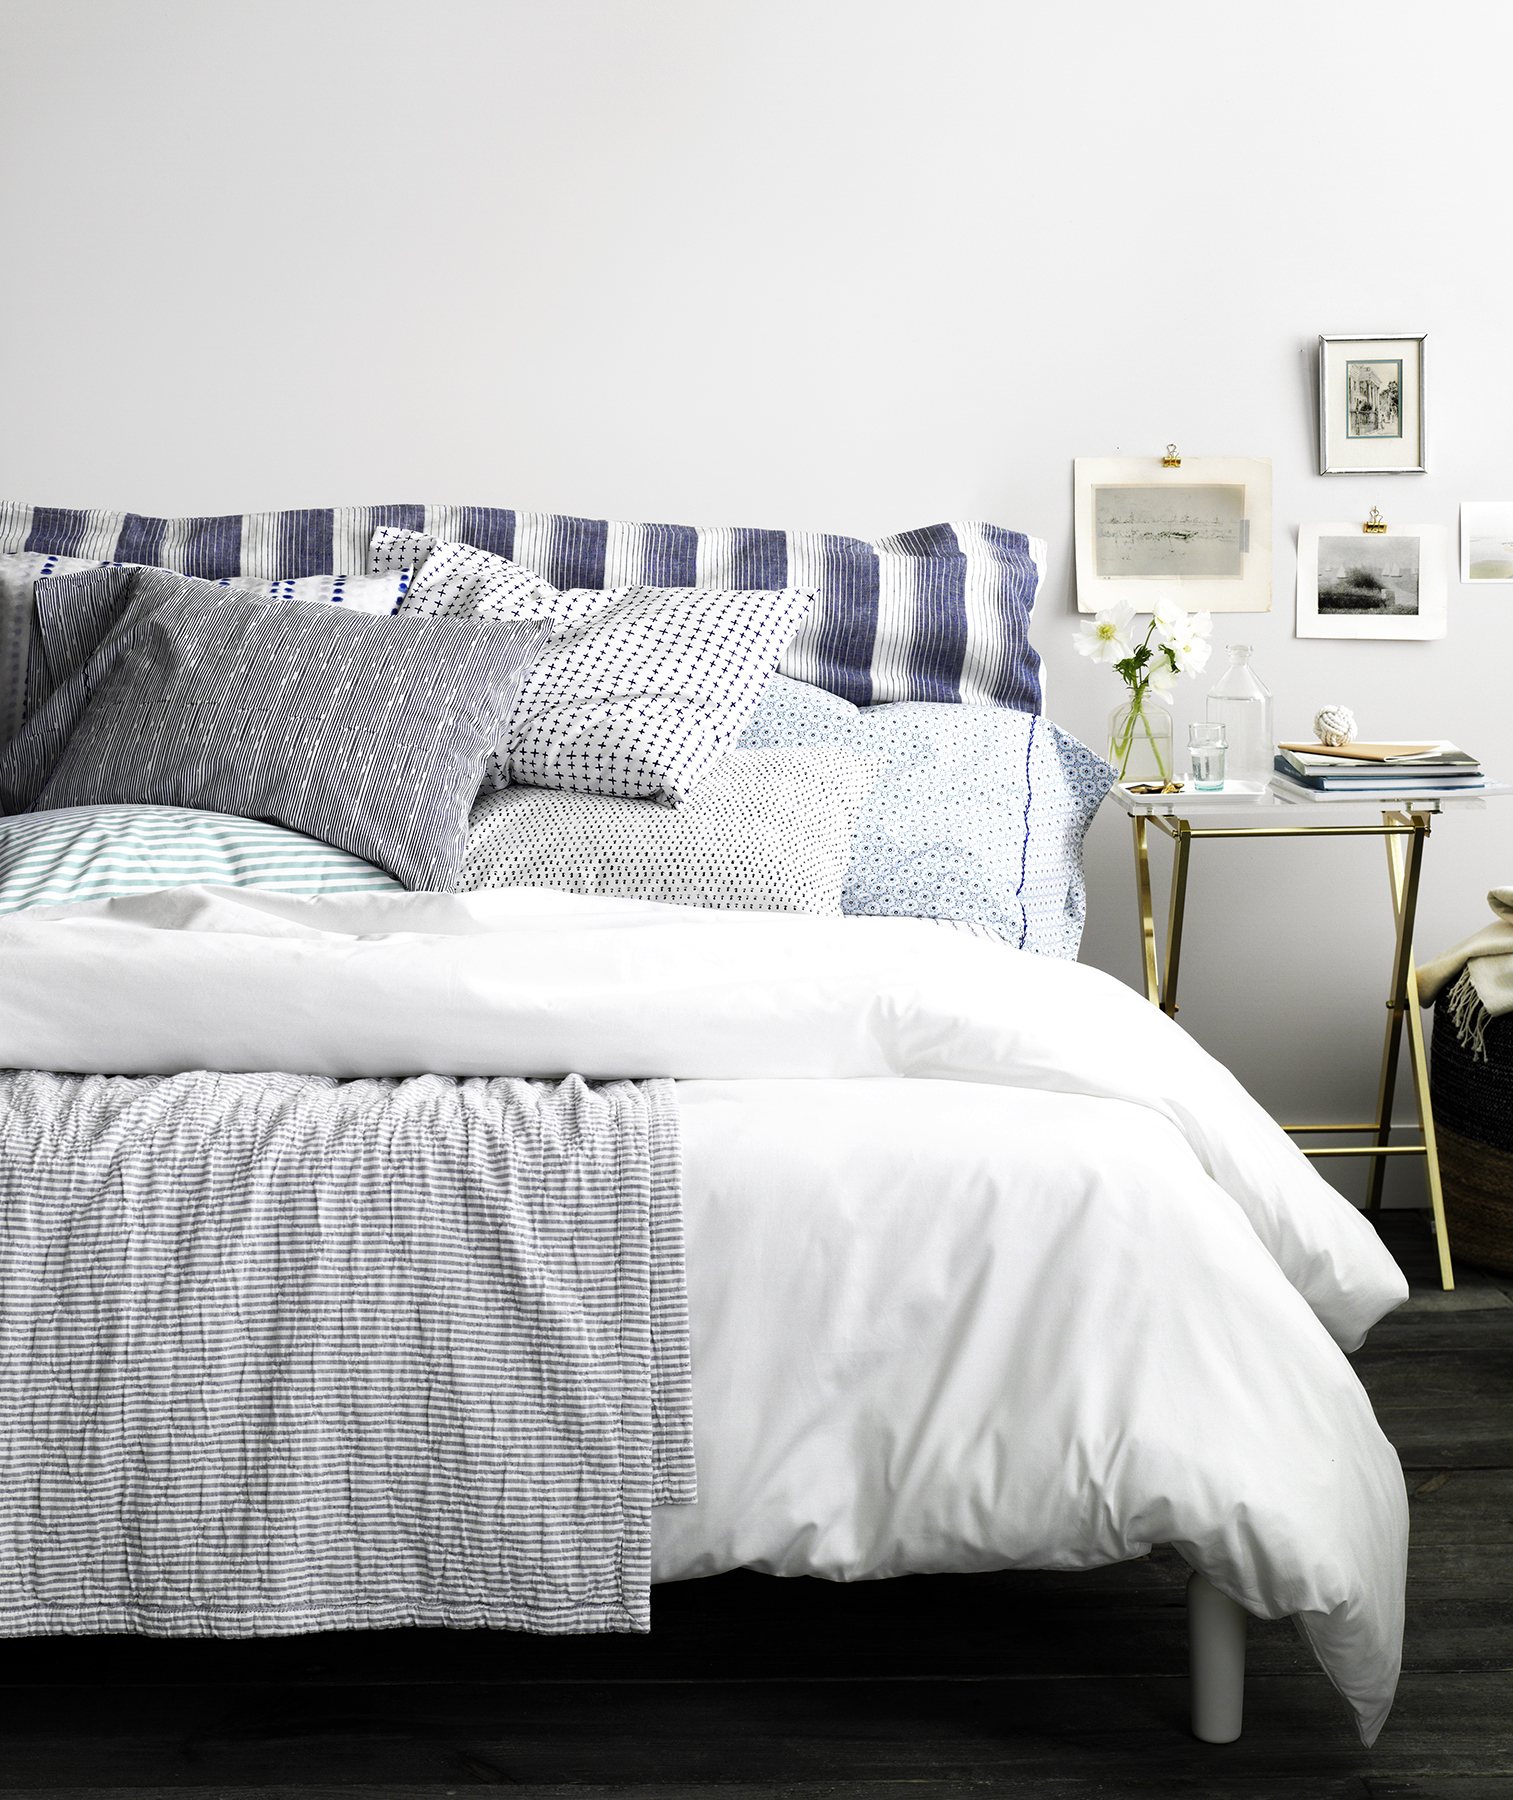 20 Decorating Tricks For Your Bedroom. Bed With Blue And White Linens